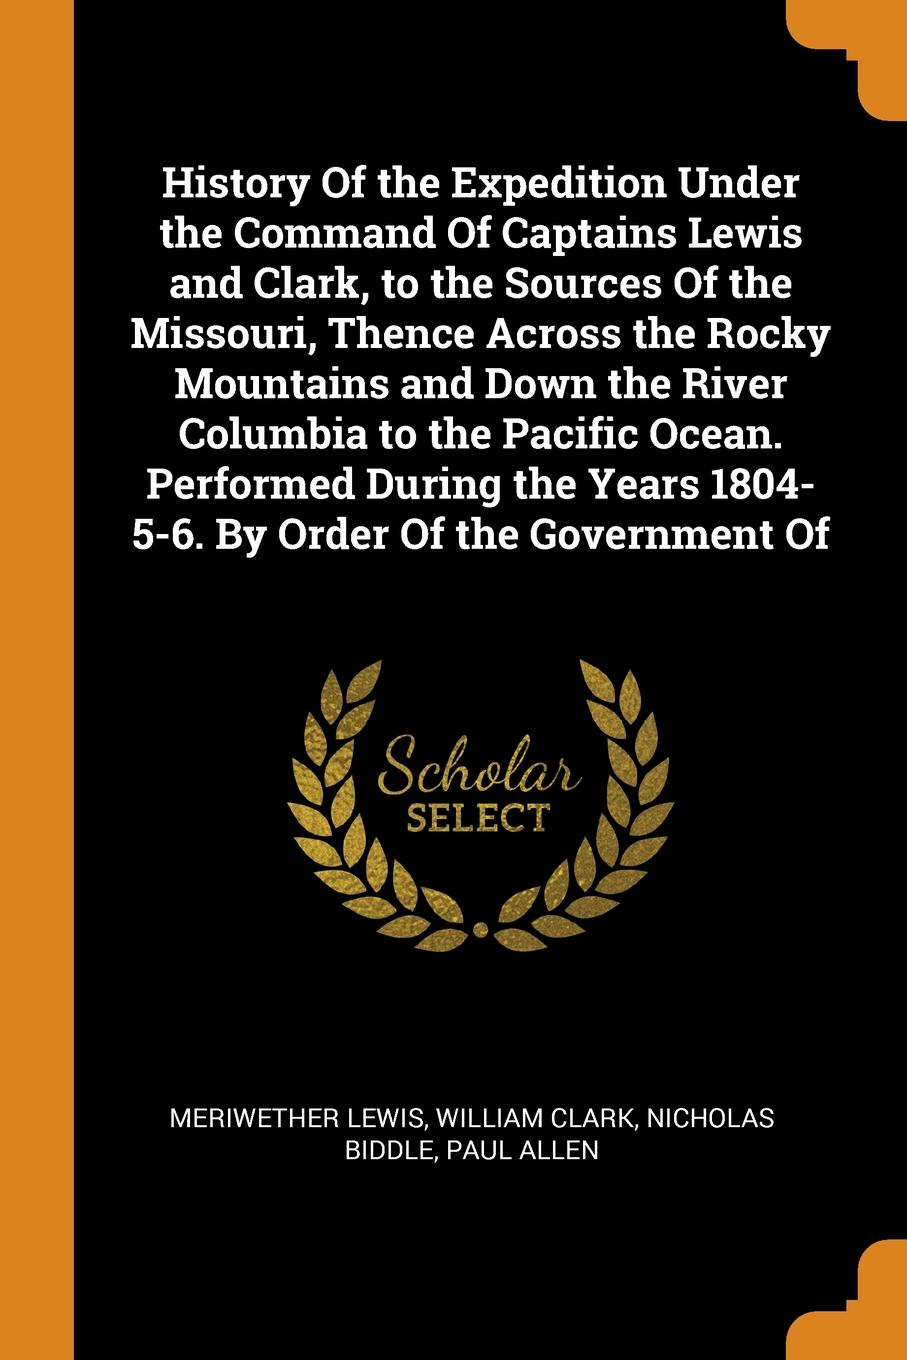 Фото - Meriwether Lewis, William Clark, Nicholas Biddle History Of the Expedition Under the Command Of Captains Lewis and Clark, to the Sources Of the Missouri, Thence Across the Rocky Mountains and Down the River Columbia to the Pacific Ocean. Performed During the Years 1804-5-6. By Order Of the Gover... katherine chandler the bird woman of the lewis and clark expedition a supplementary reader for first and second grades